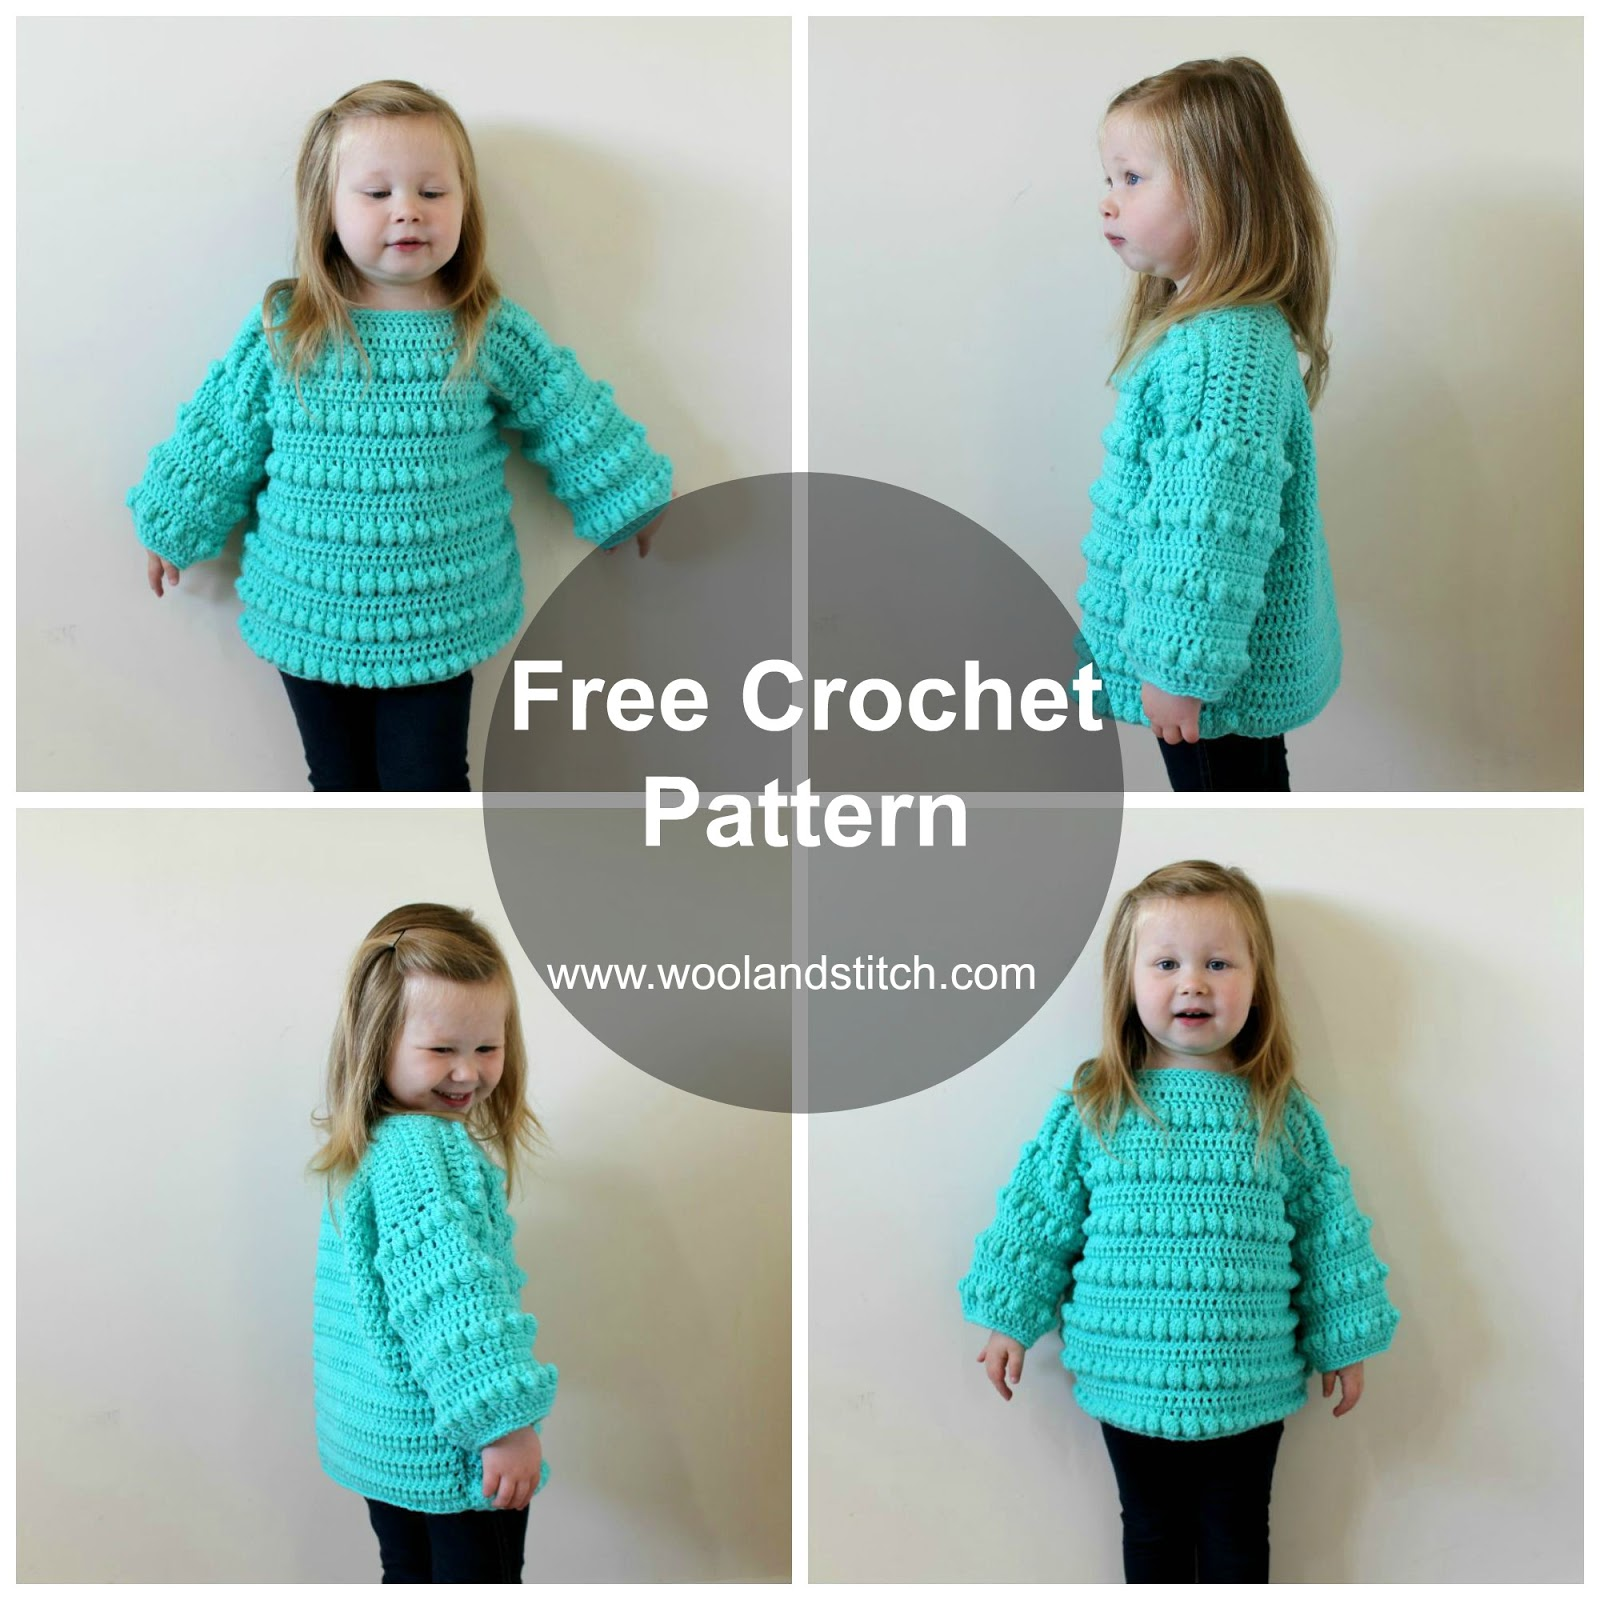 Mini Kids Bobble Sweater Free Crochet Pattern Wool And Stitch